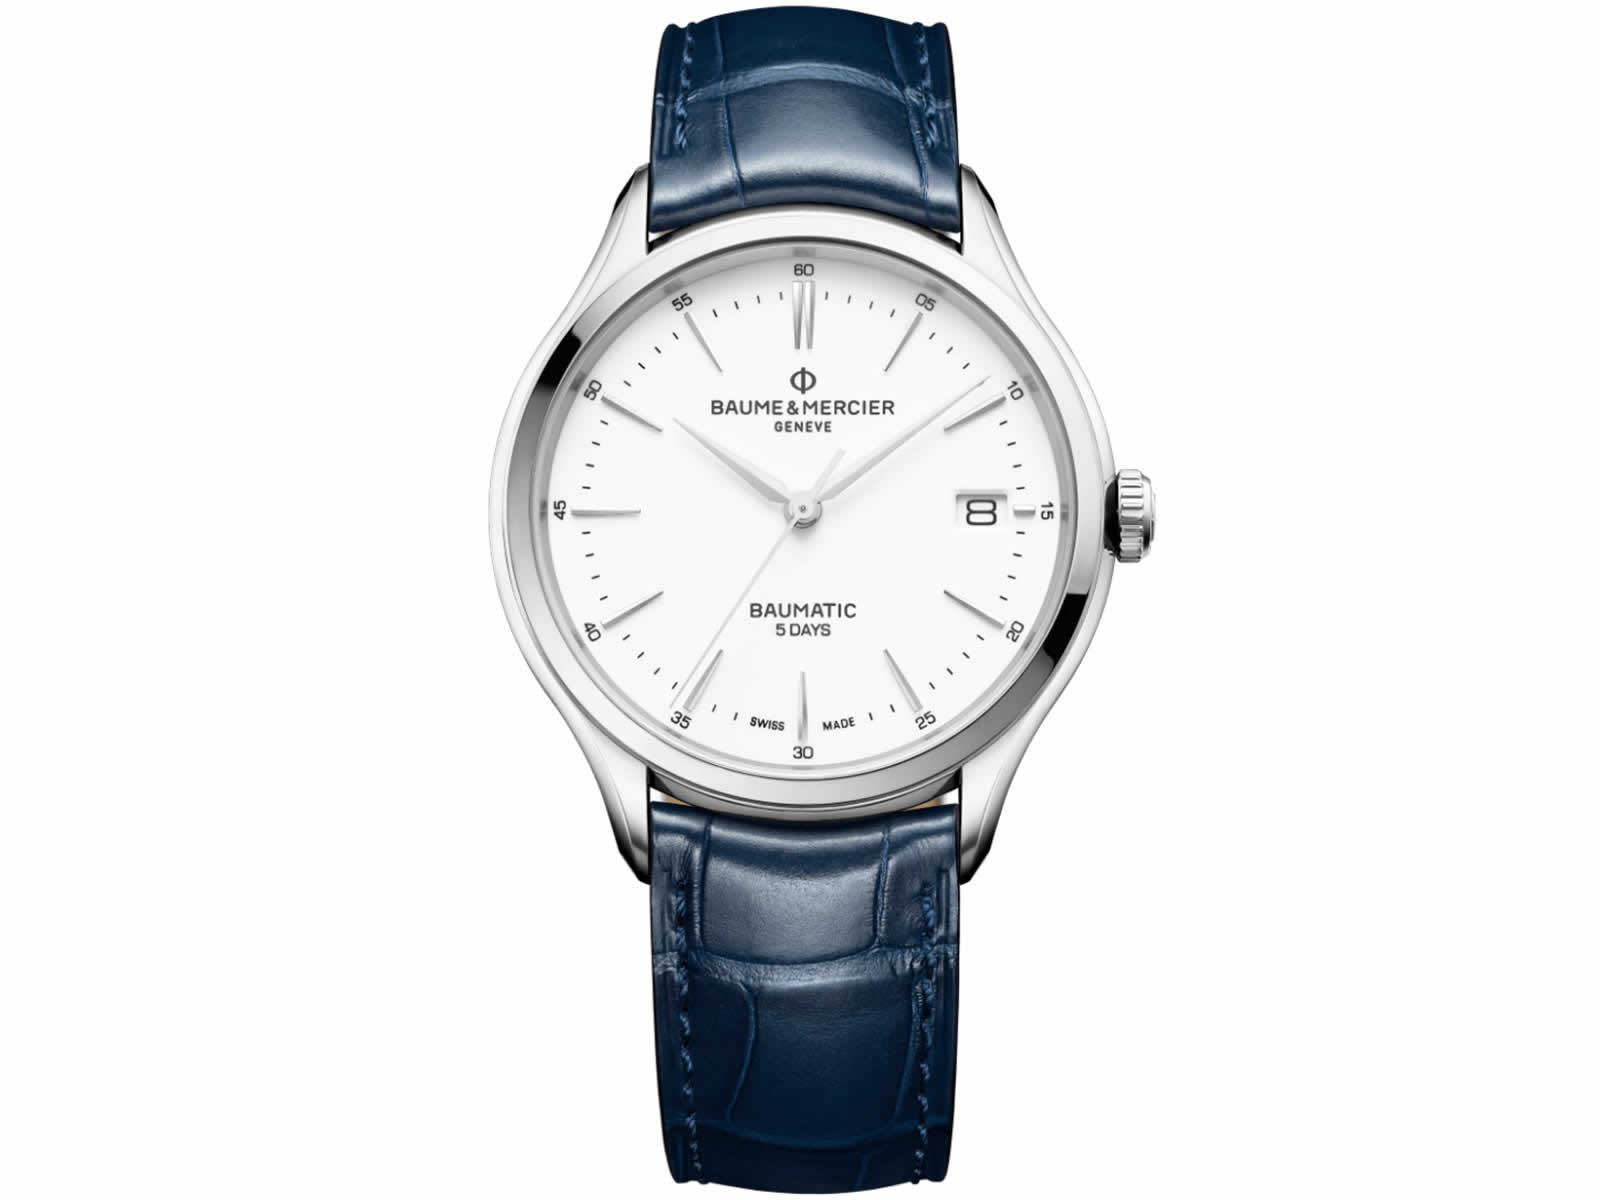 10398-Baume-Mercier-Clifton-Baumatic-Collection-Sihh2018-Blue-Front.jpg